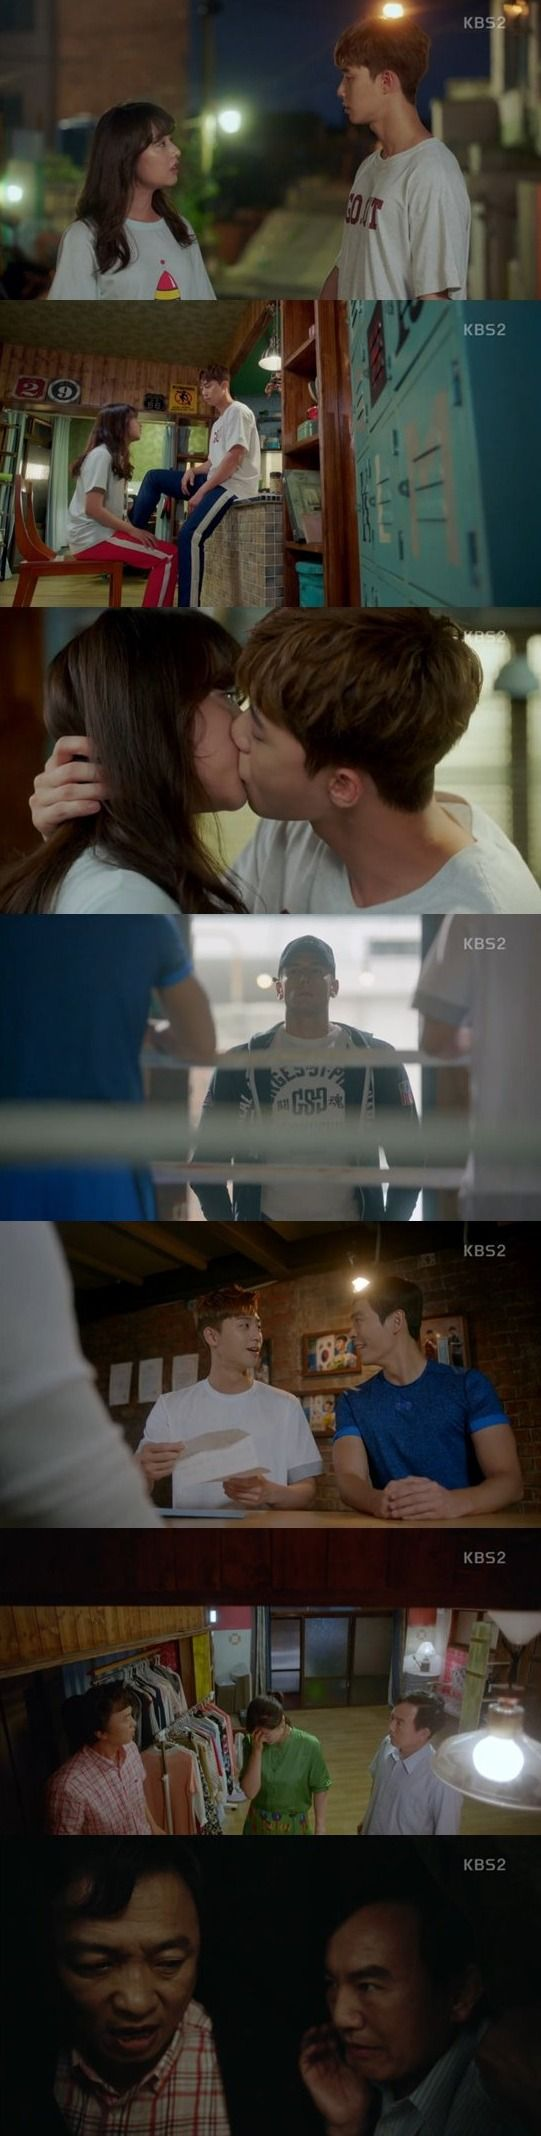 [Spoiler] Added episode 13 captures for the #kdrama 'Fight My Way'